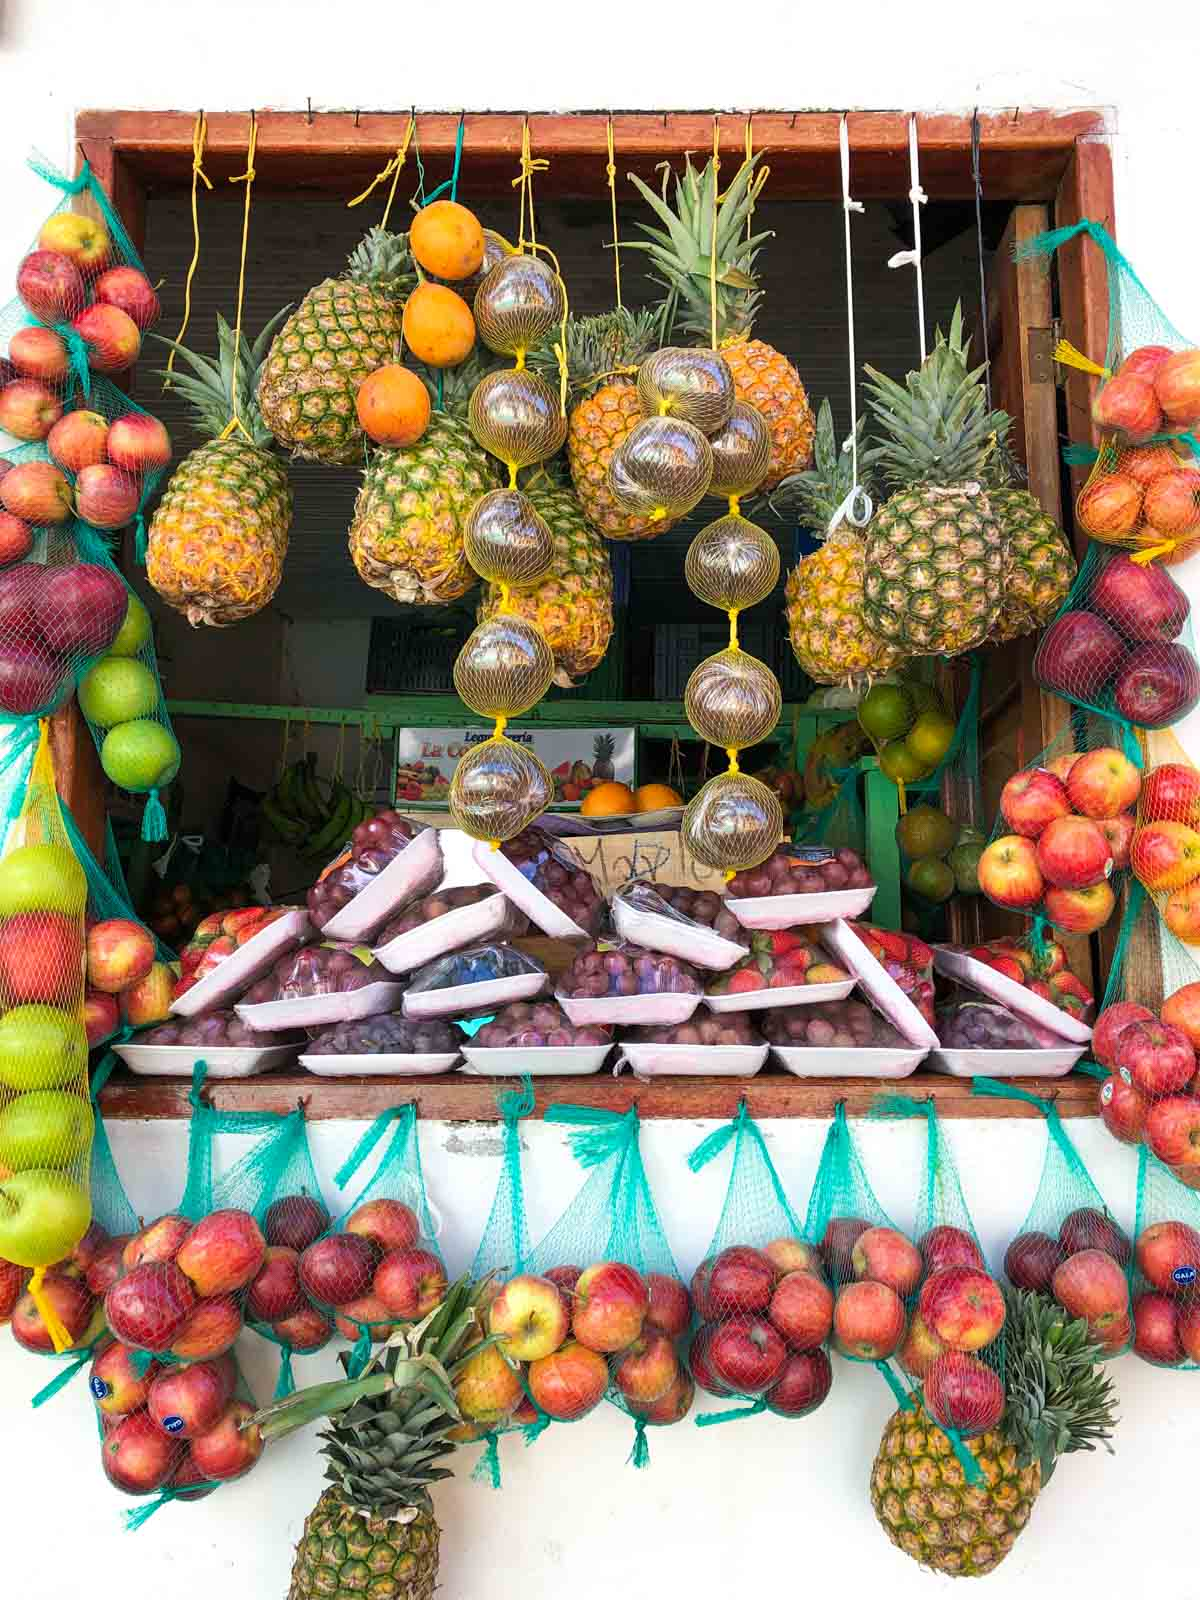 A display of fruits in Jardin, Colombia.